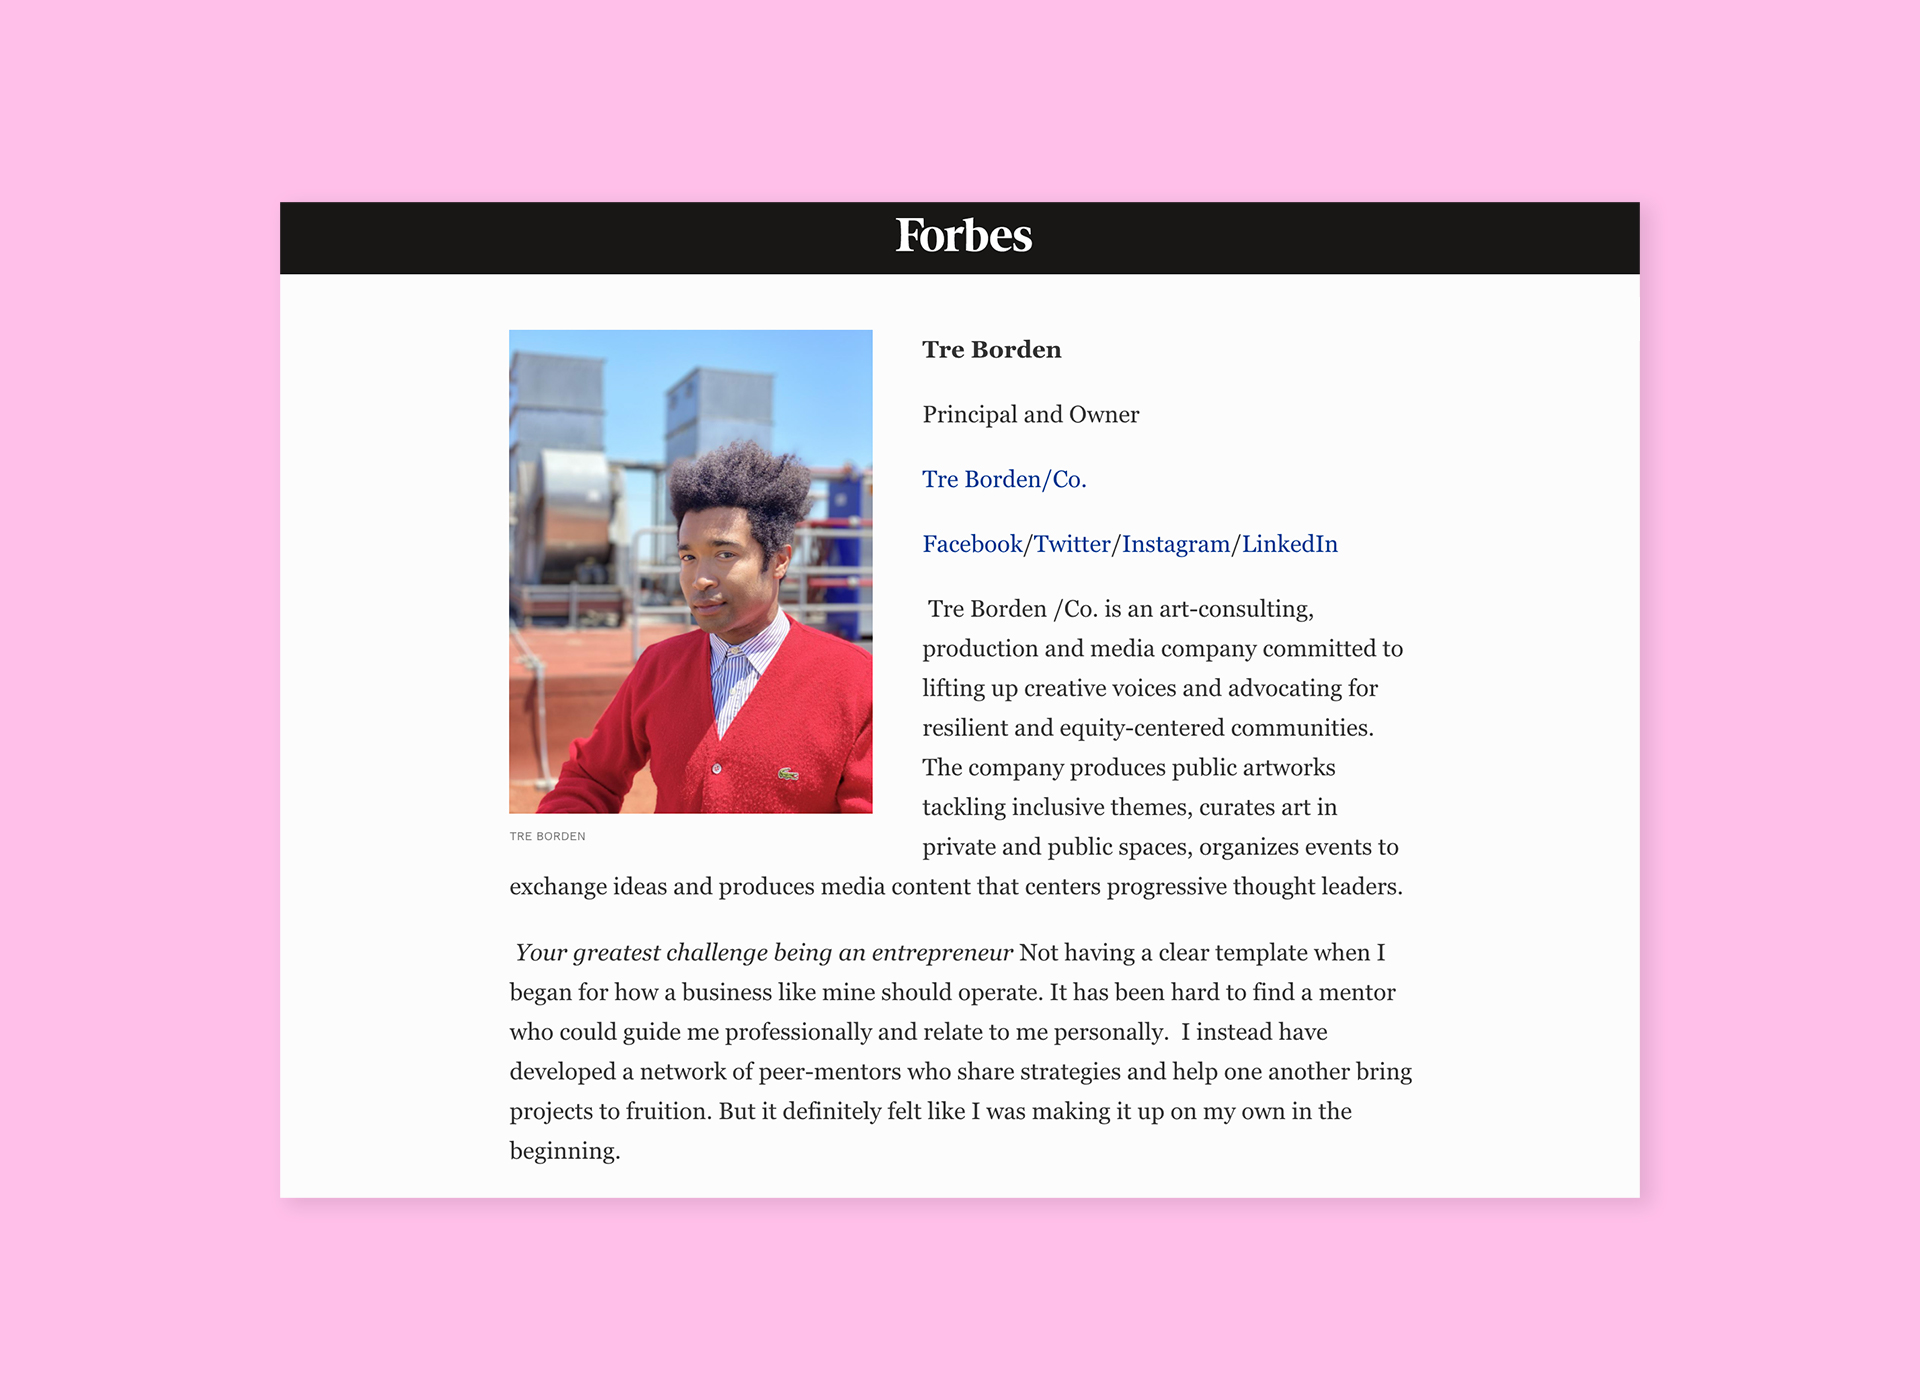 Forbes article screenshot over pink background